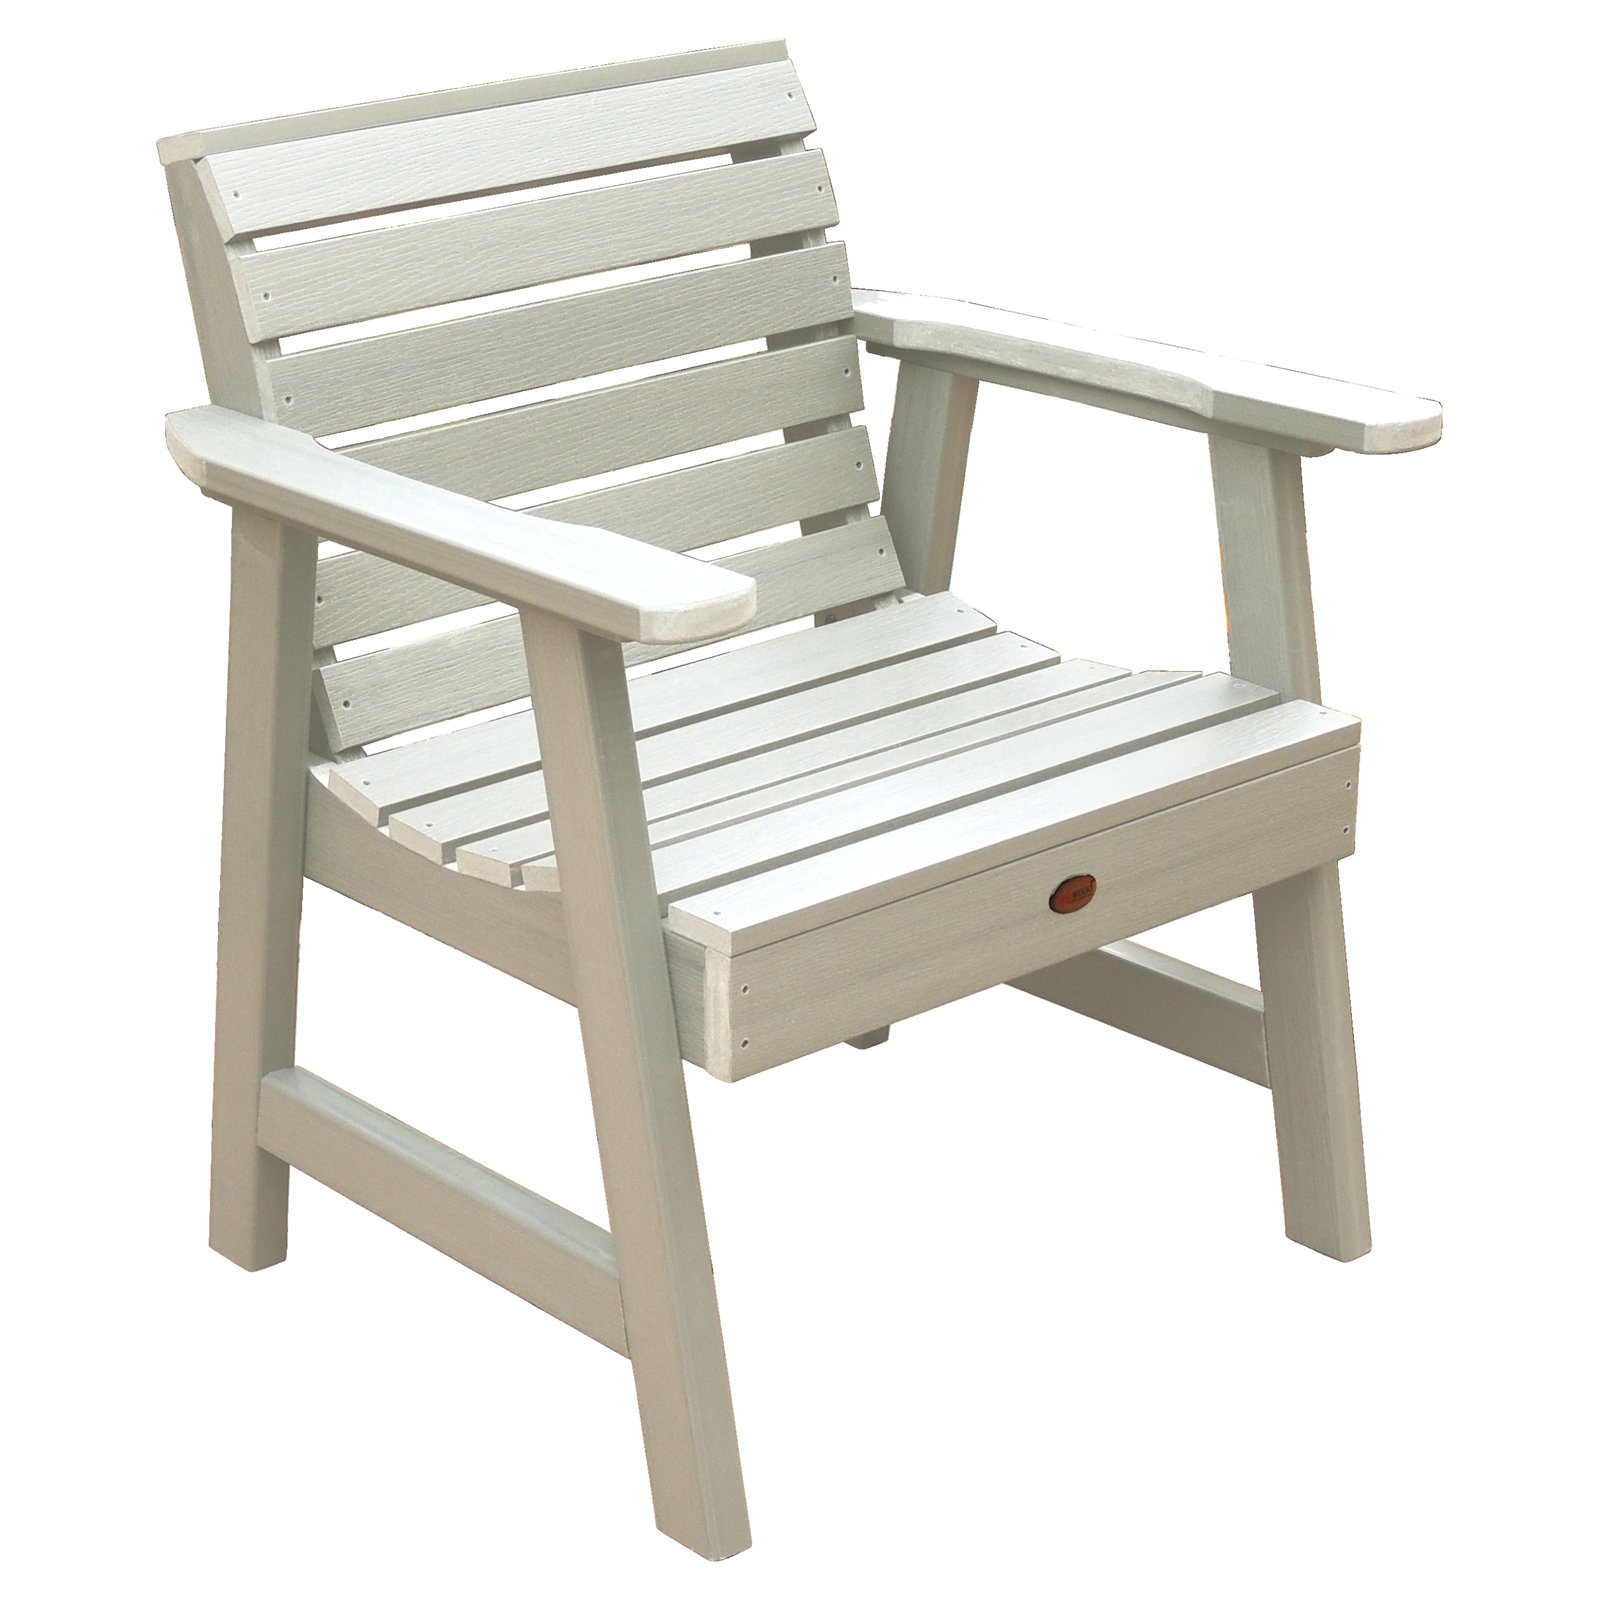 highwood® Weatherly Recycled Plastic Garden Lounge Chair